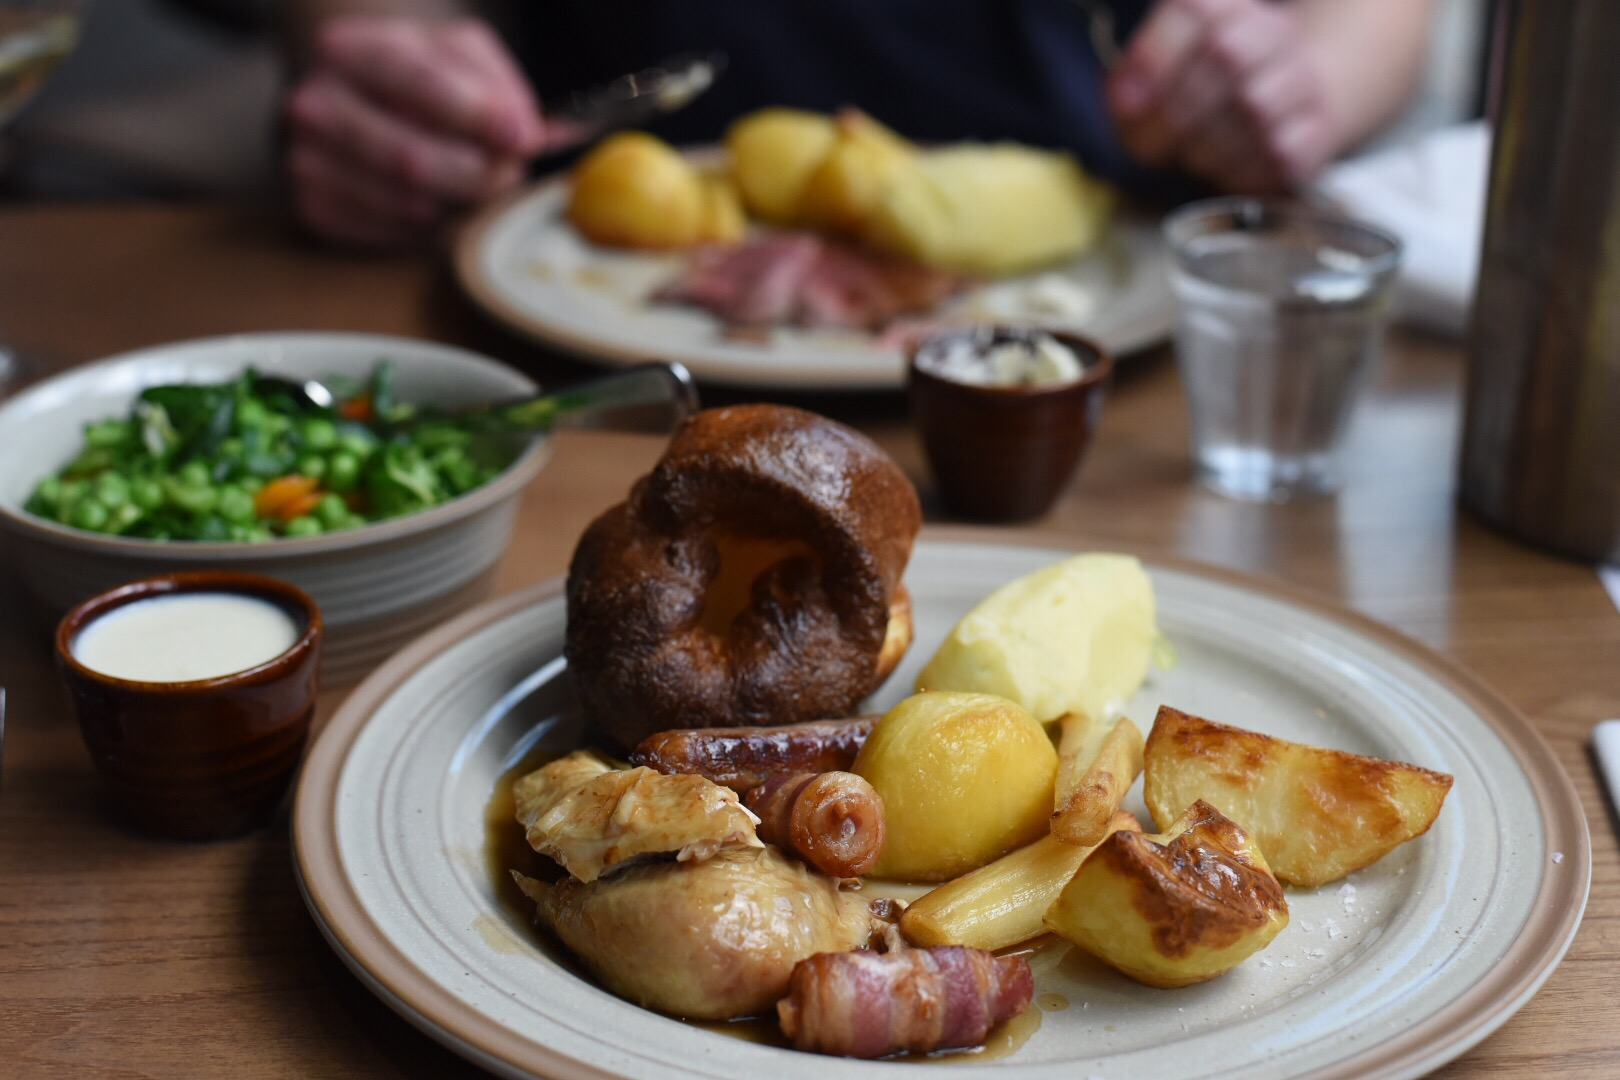 ... roast potatoes, parsnips, bread sauce, greens and Yorkshire pudding